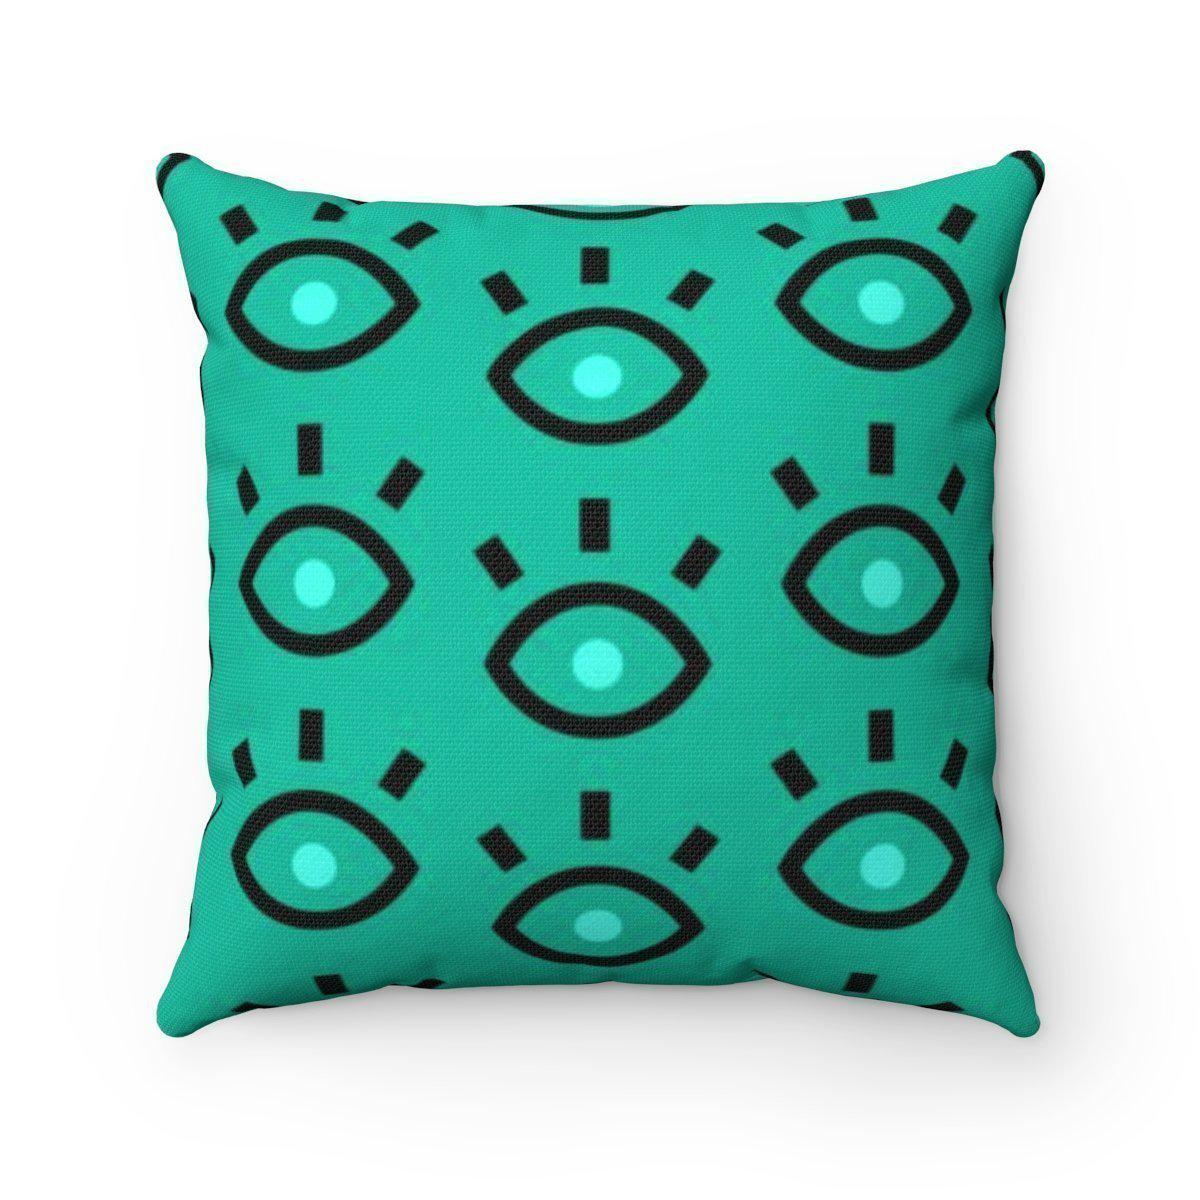 Maison d'Elite modern decorative cushion cover-Home Decor - Decorative Accents - Pillows & Throws - Decorative Pillows-Maison d'Elite-14x14-Très Elite